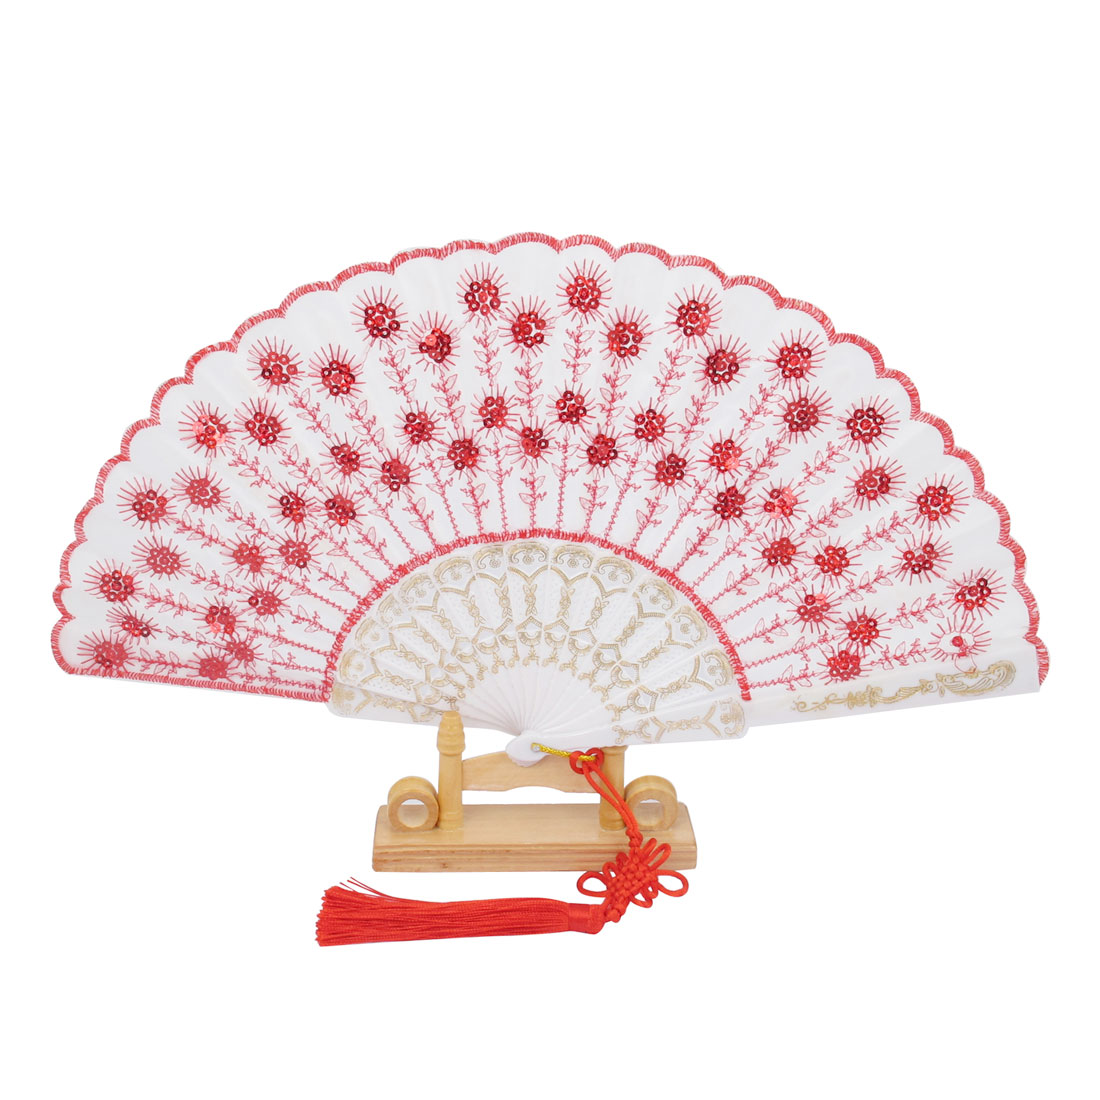 Chinese Knot Sequins Decor Plastic Ribs Folding Hand Fan White Red w Wood Base